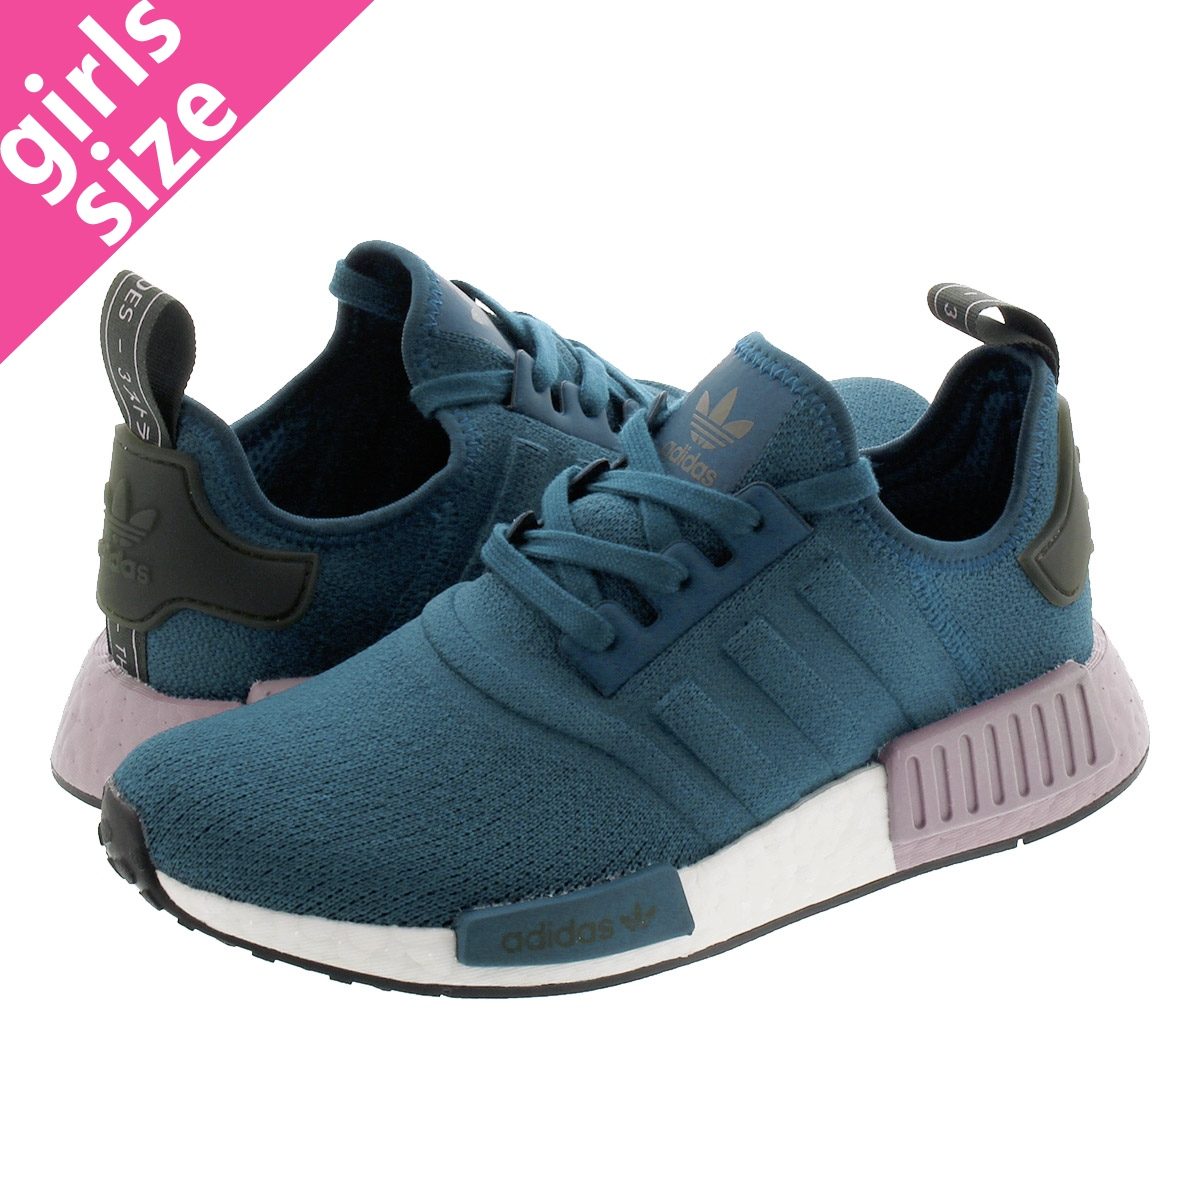 innovative design d8697 1cd5b adidas NMD_R1 PK W Adidas NMD R1 PK women TECH MINERAL/TECH MINERAL/SOFT  VISION ee5171